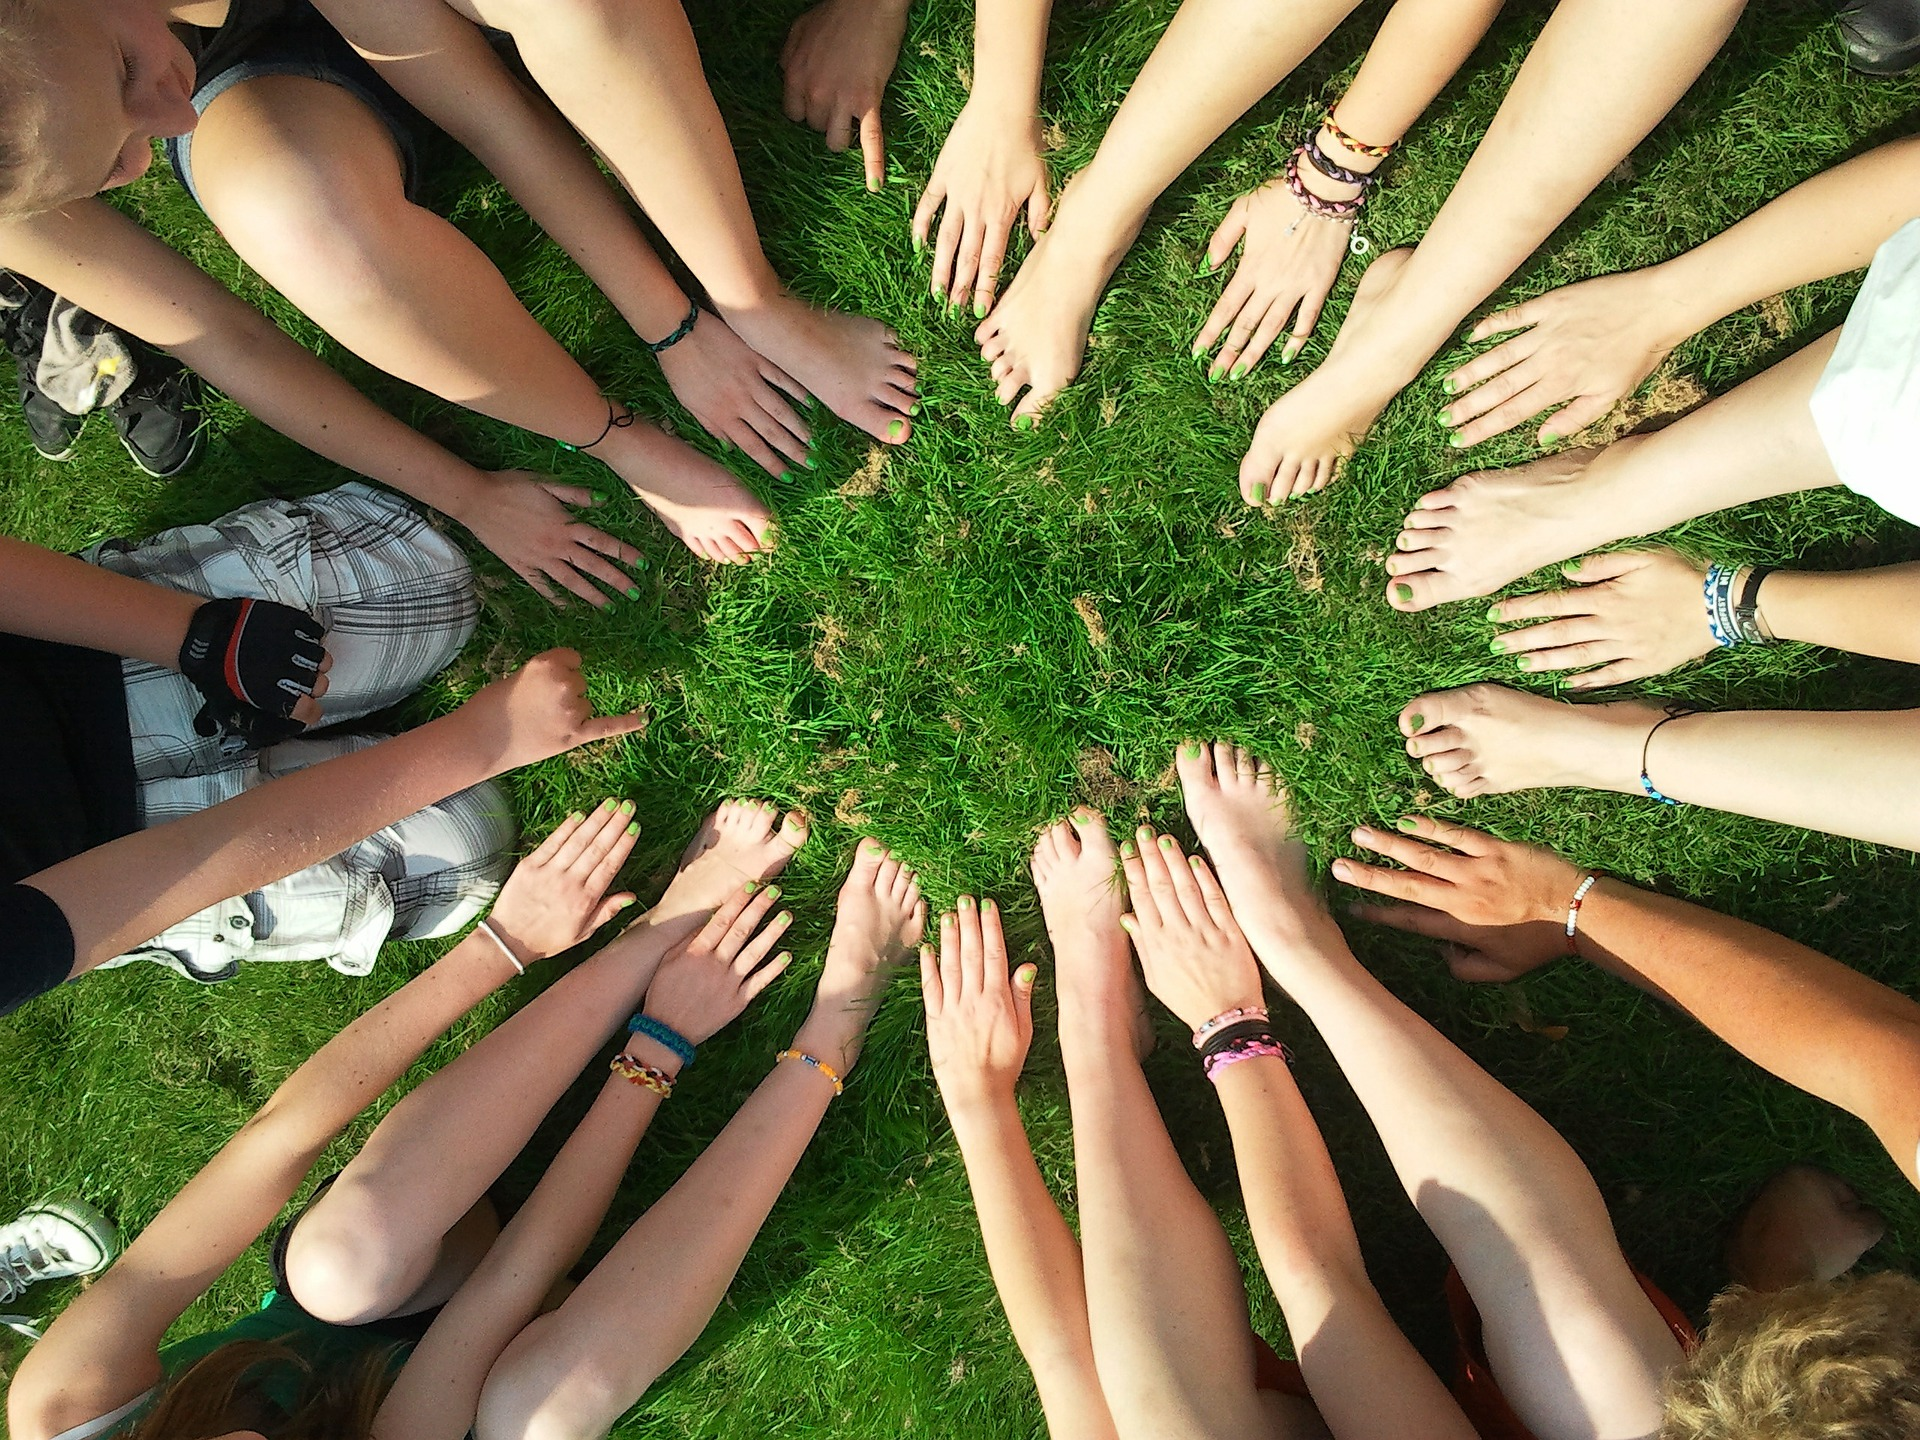 5 Reasons Why Having a Tight-Knit Community Matters in Business